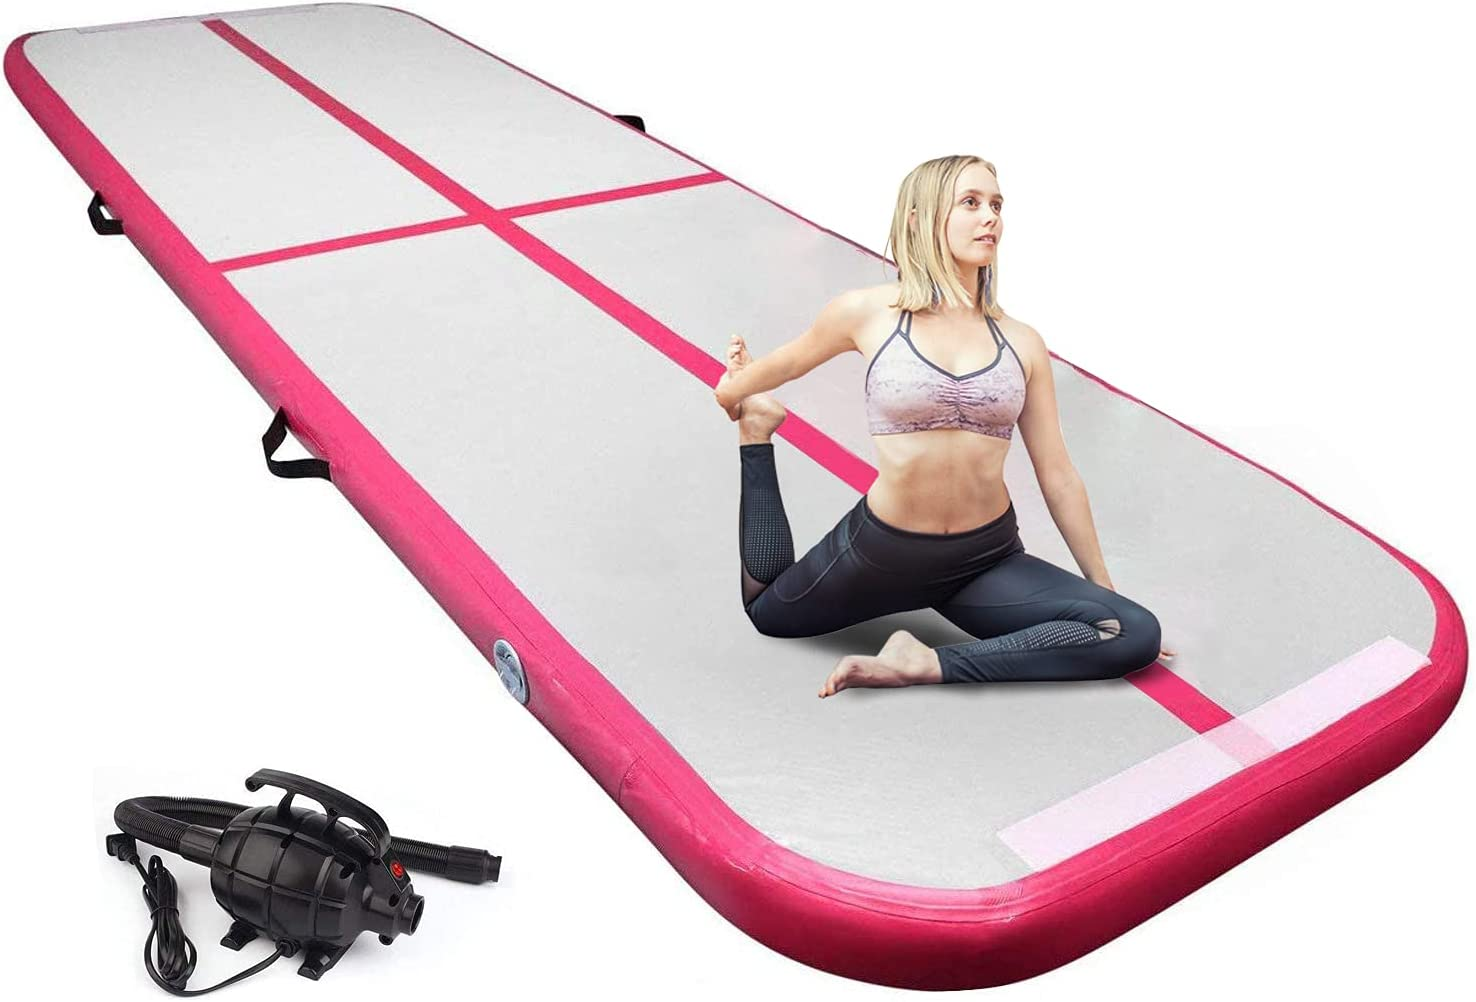 EDOSTORY Inflatable Air Gymnastics Mat 10ft/13ft/16ft/20ft Training Mats 4 inches thick Gymnastics Tracks for Home /Training/Cheerleading/Yoga/Water Sports with 600W Electric Pump